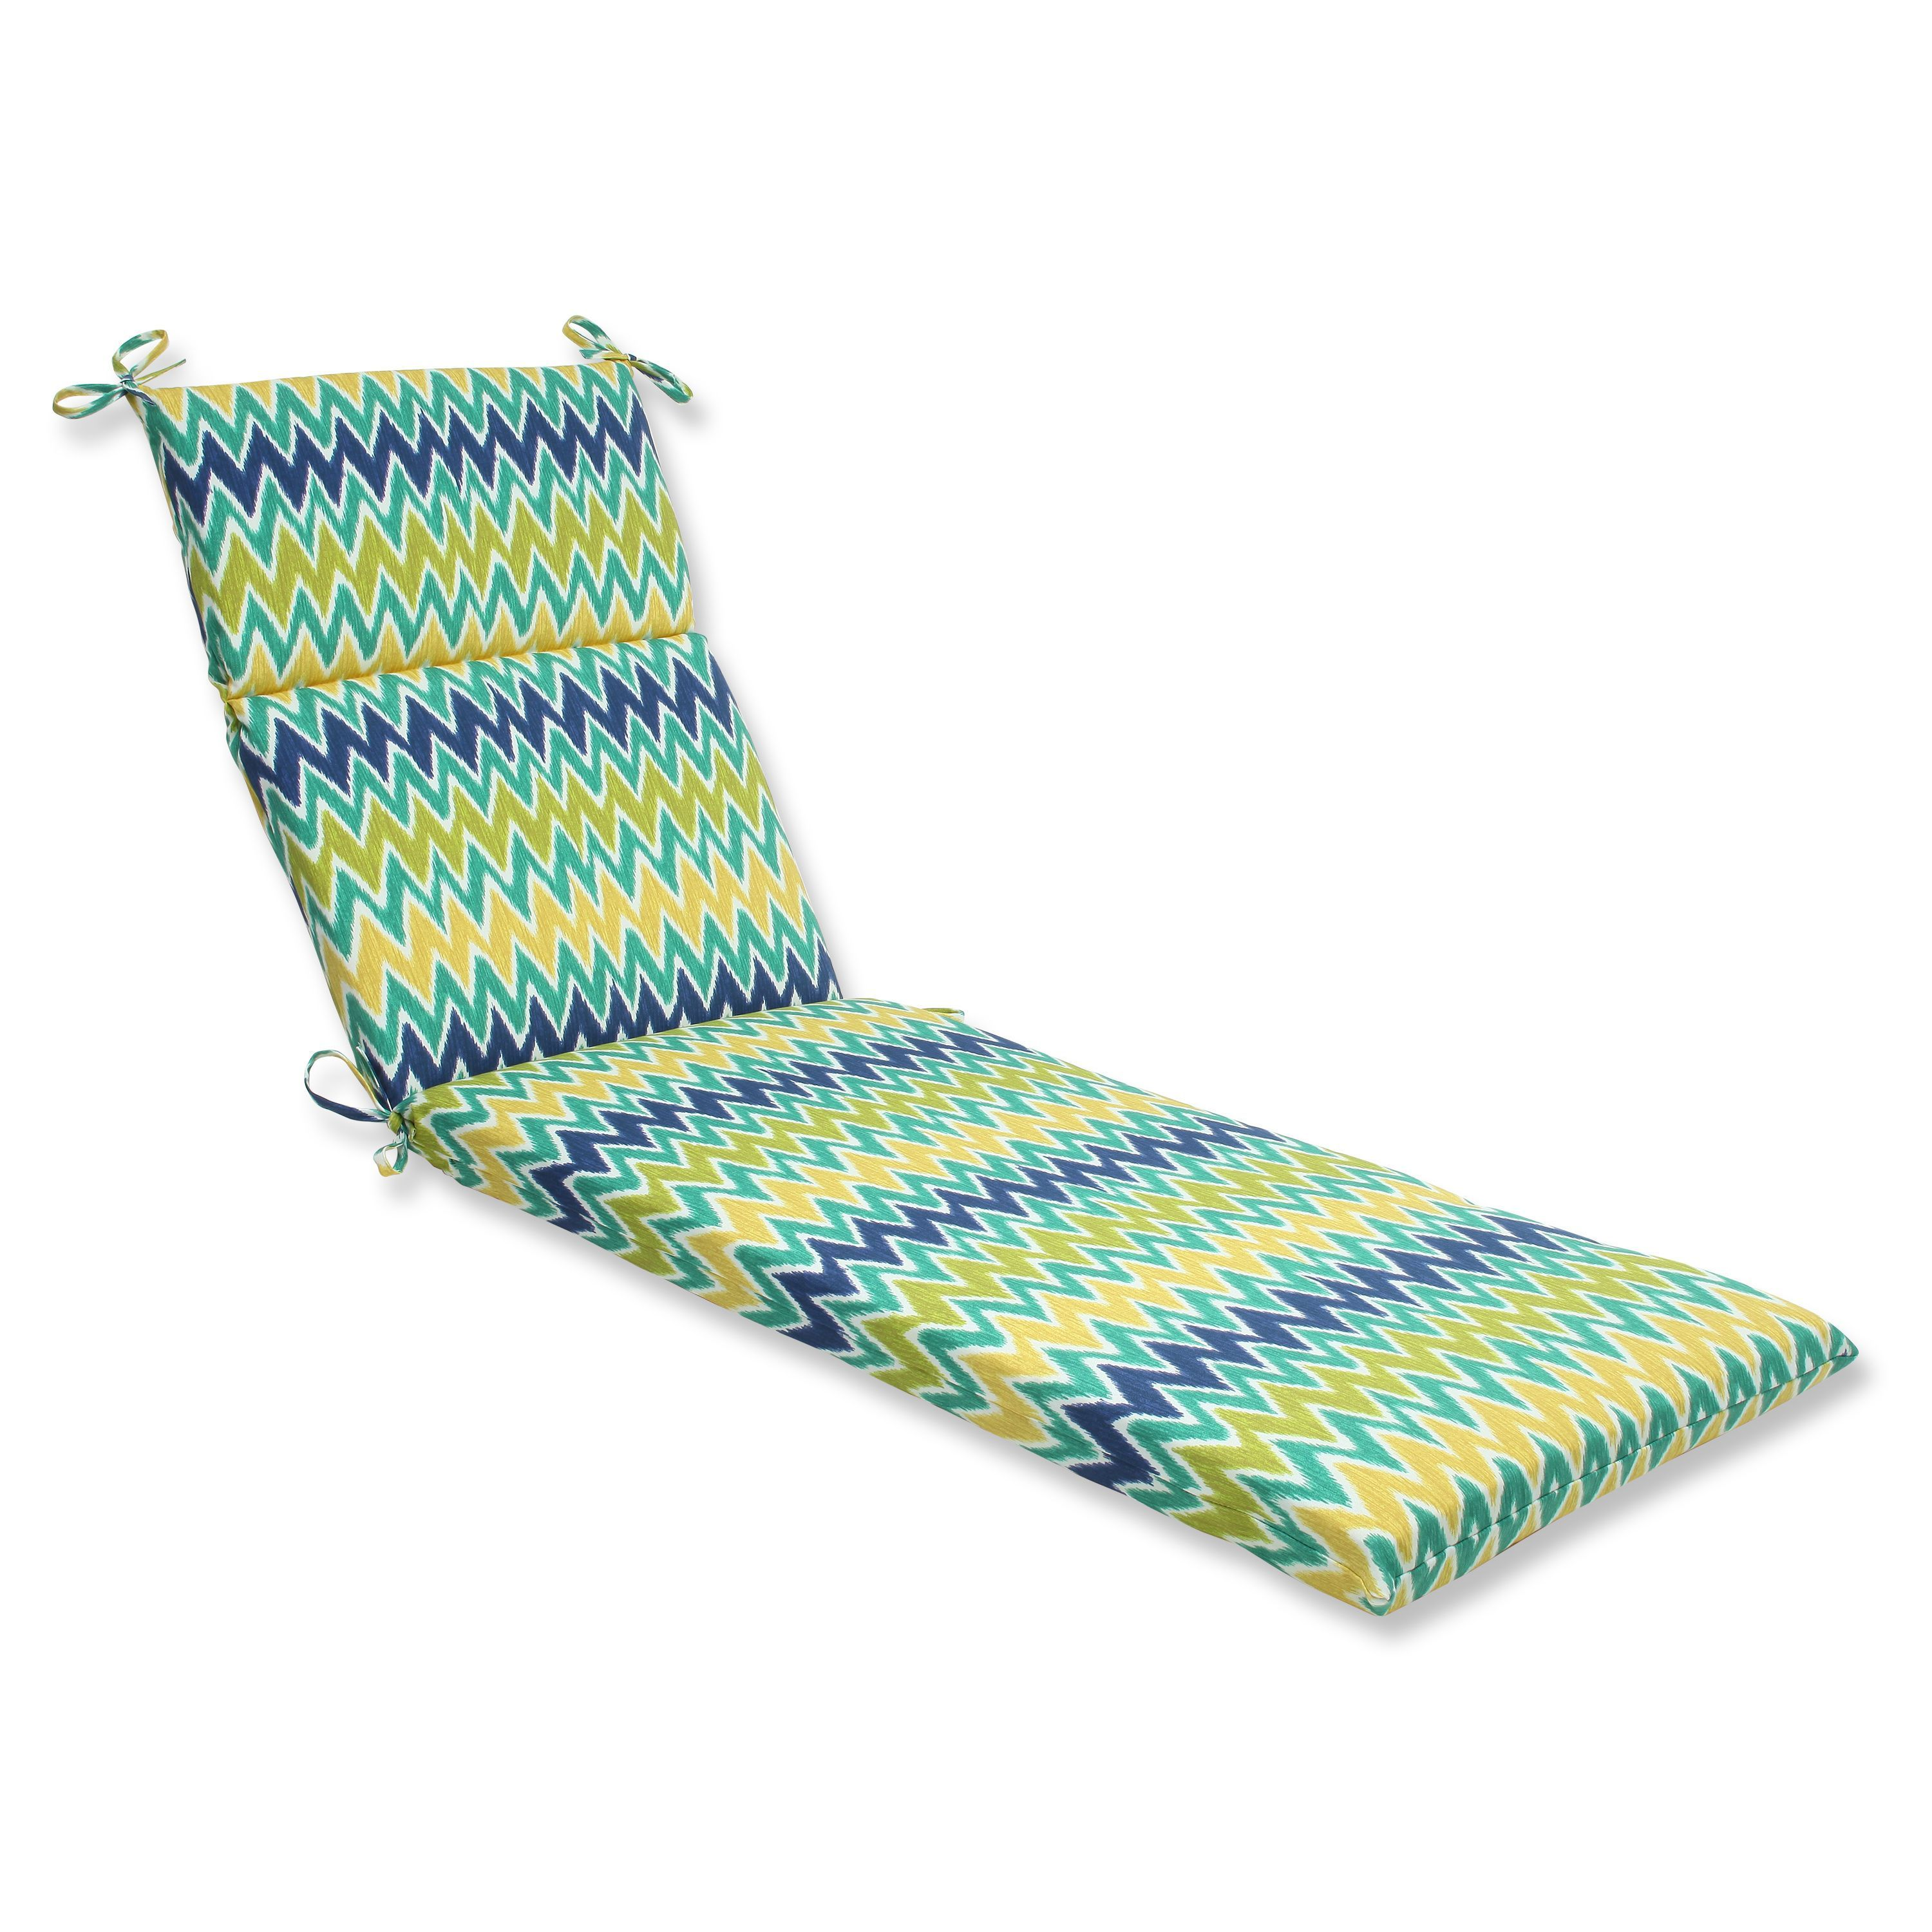 sofa modern overstock irving product home garden turquoise outdoor rattan free set modular today furniture pc patio cushions shipping